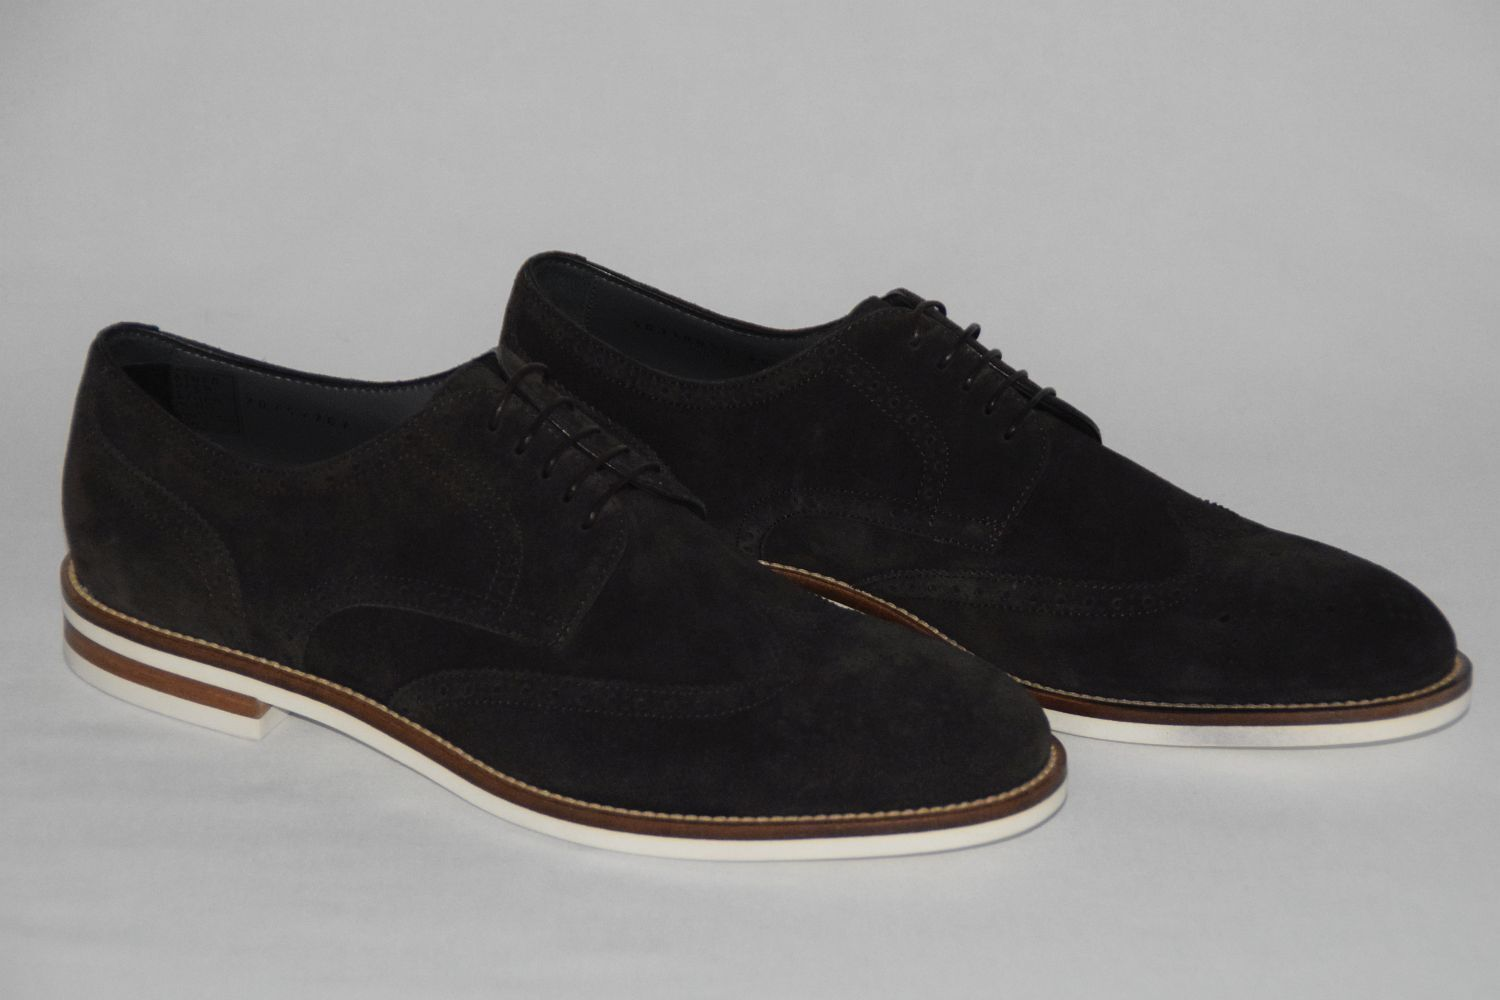 HUGO BOSS scarpe, Mod.Deeder -SD, Gr. EU 43    UK 9   US 10, Dark Marronee  100% nuovo di zecca con qualità originale